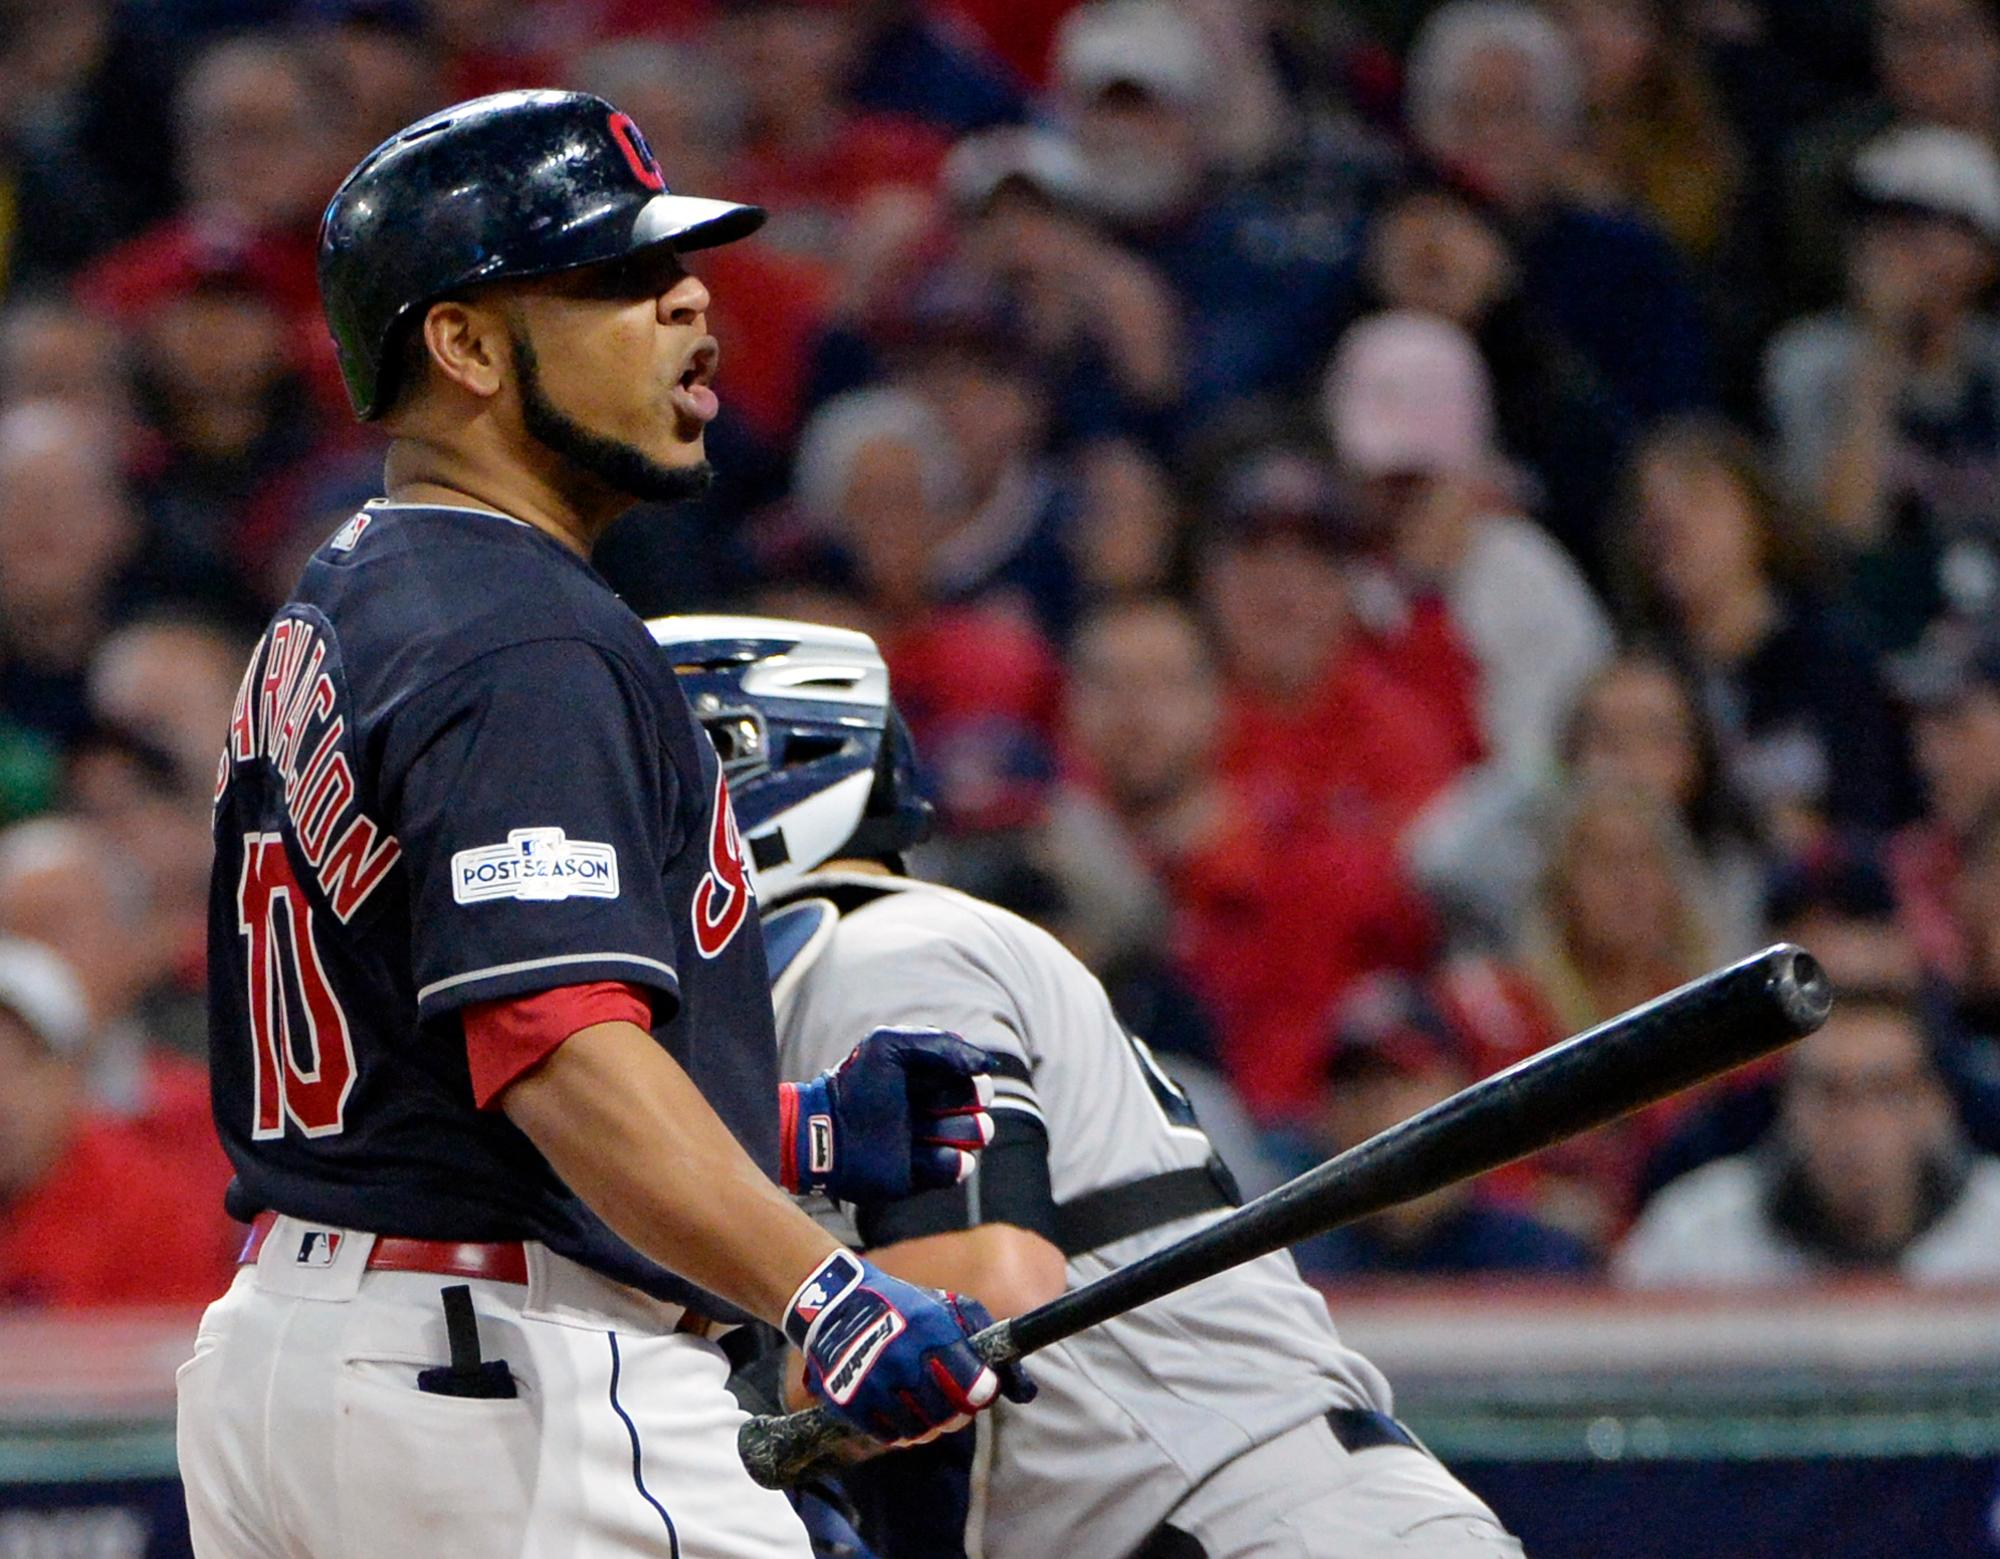 Cleveland Indians' Edwin Encarnacion reacts after striking out against New York Yankees starting pitcher CC Sabathia during the fourth inning of Game 5 of a baseball American League Division Series, Wednesday, Oct. 11, 2017, in Cleveland. (AP Photo/Phil Long)